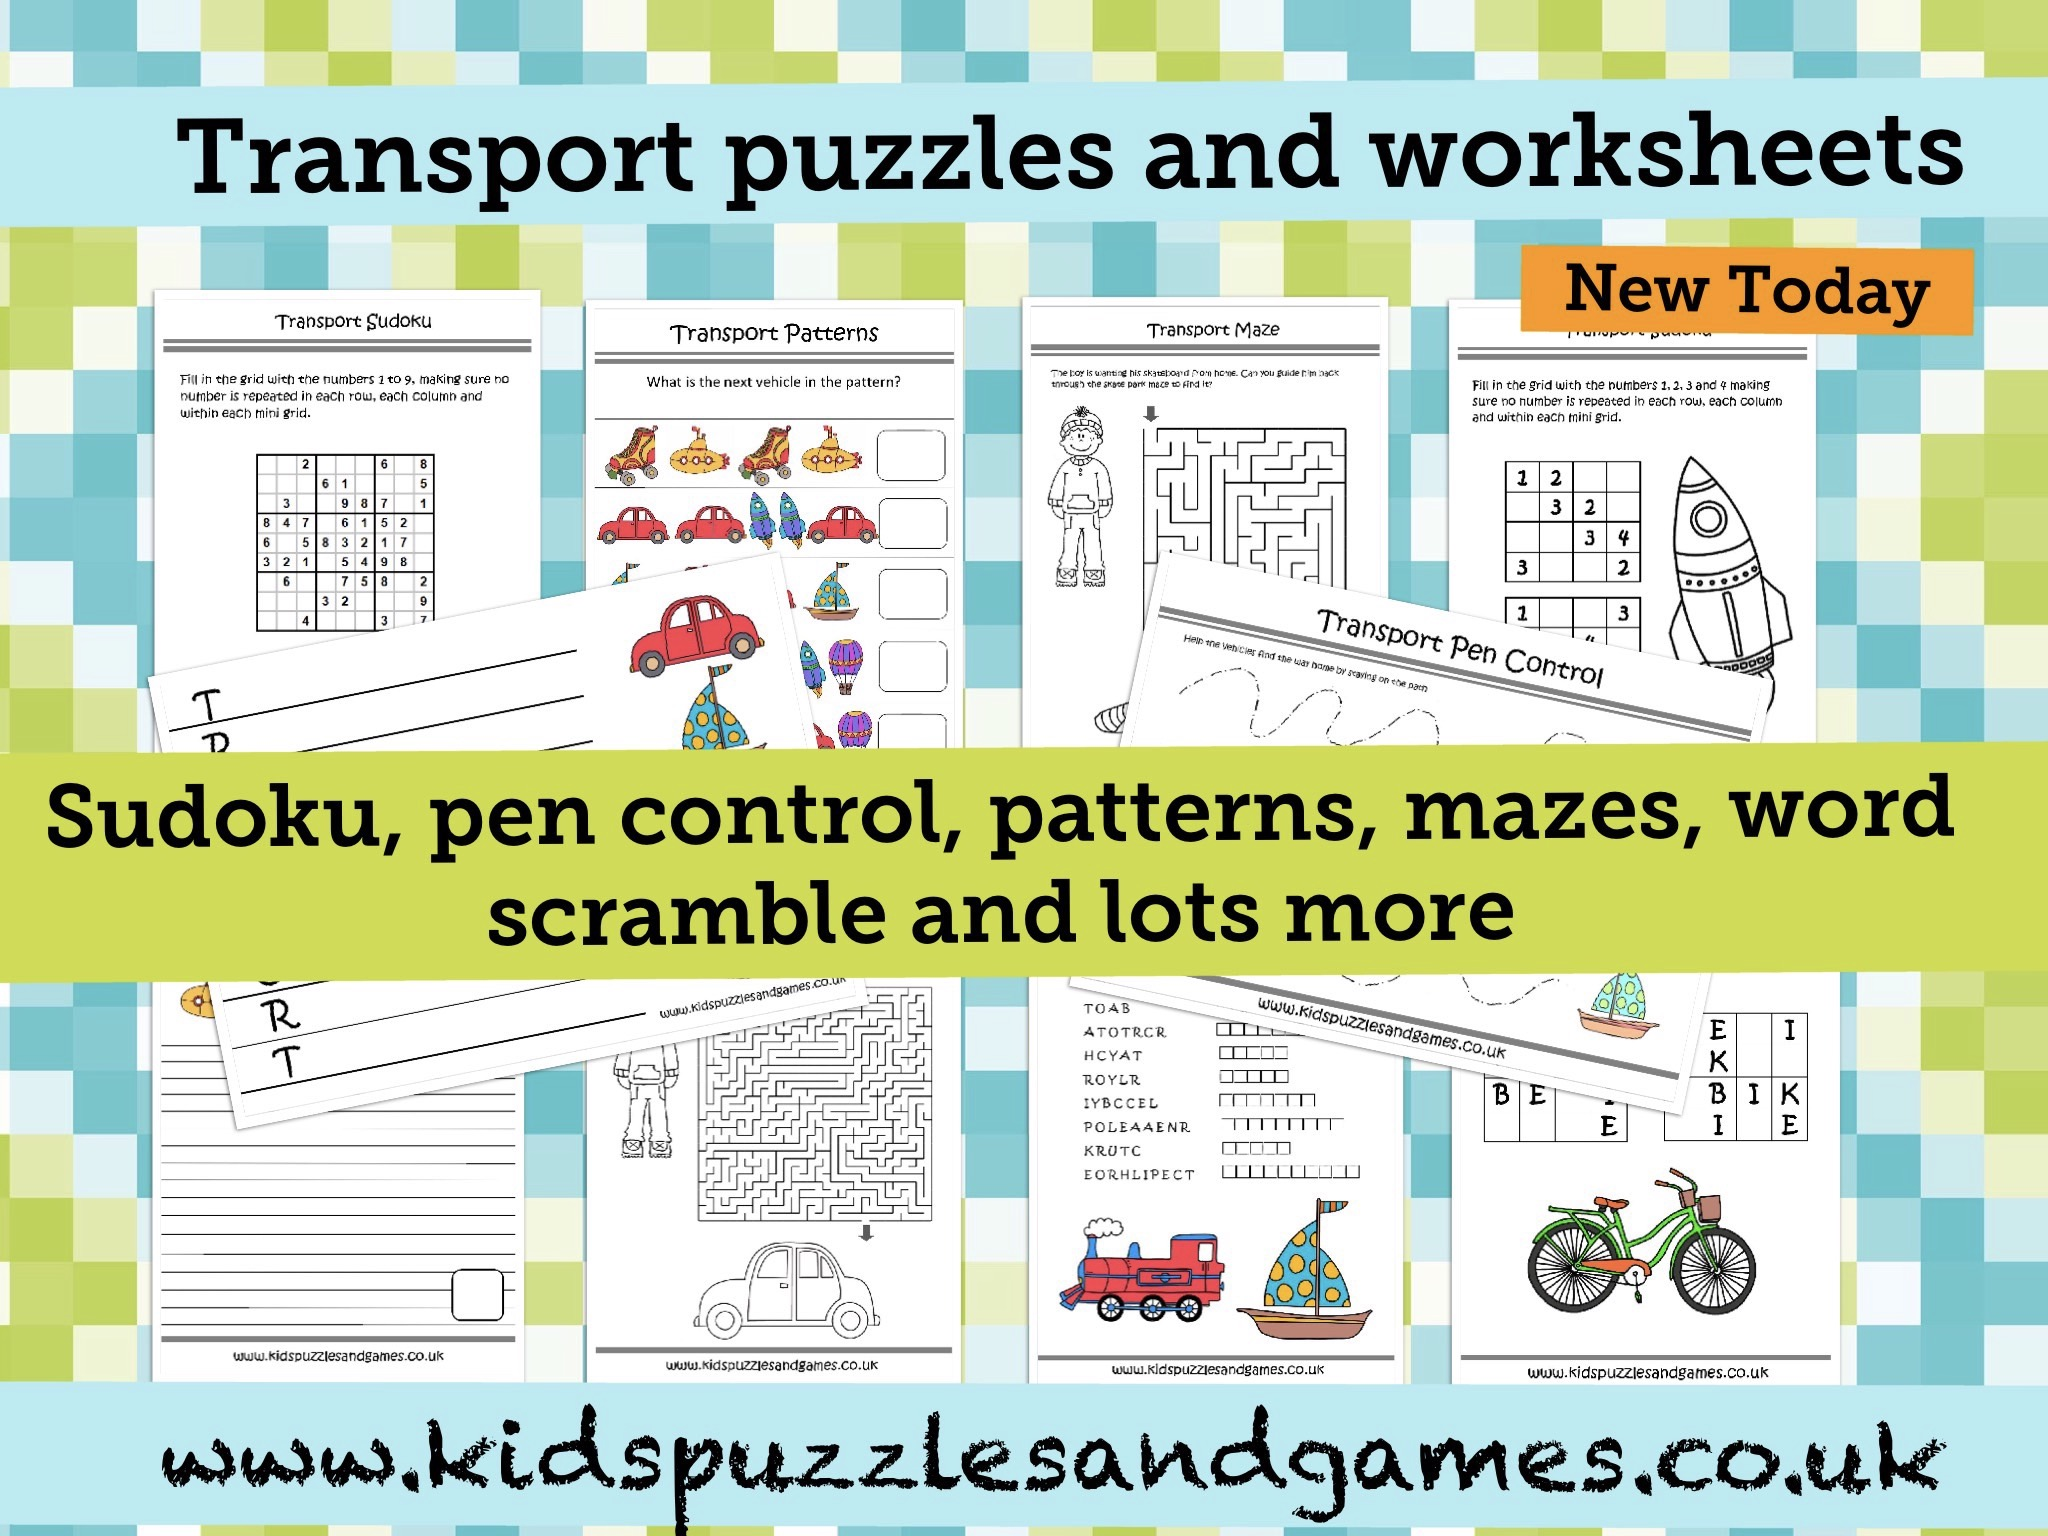 All new transport puzzles and worksheets